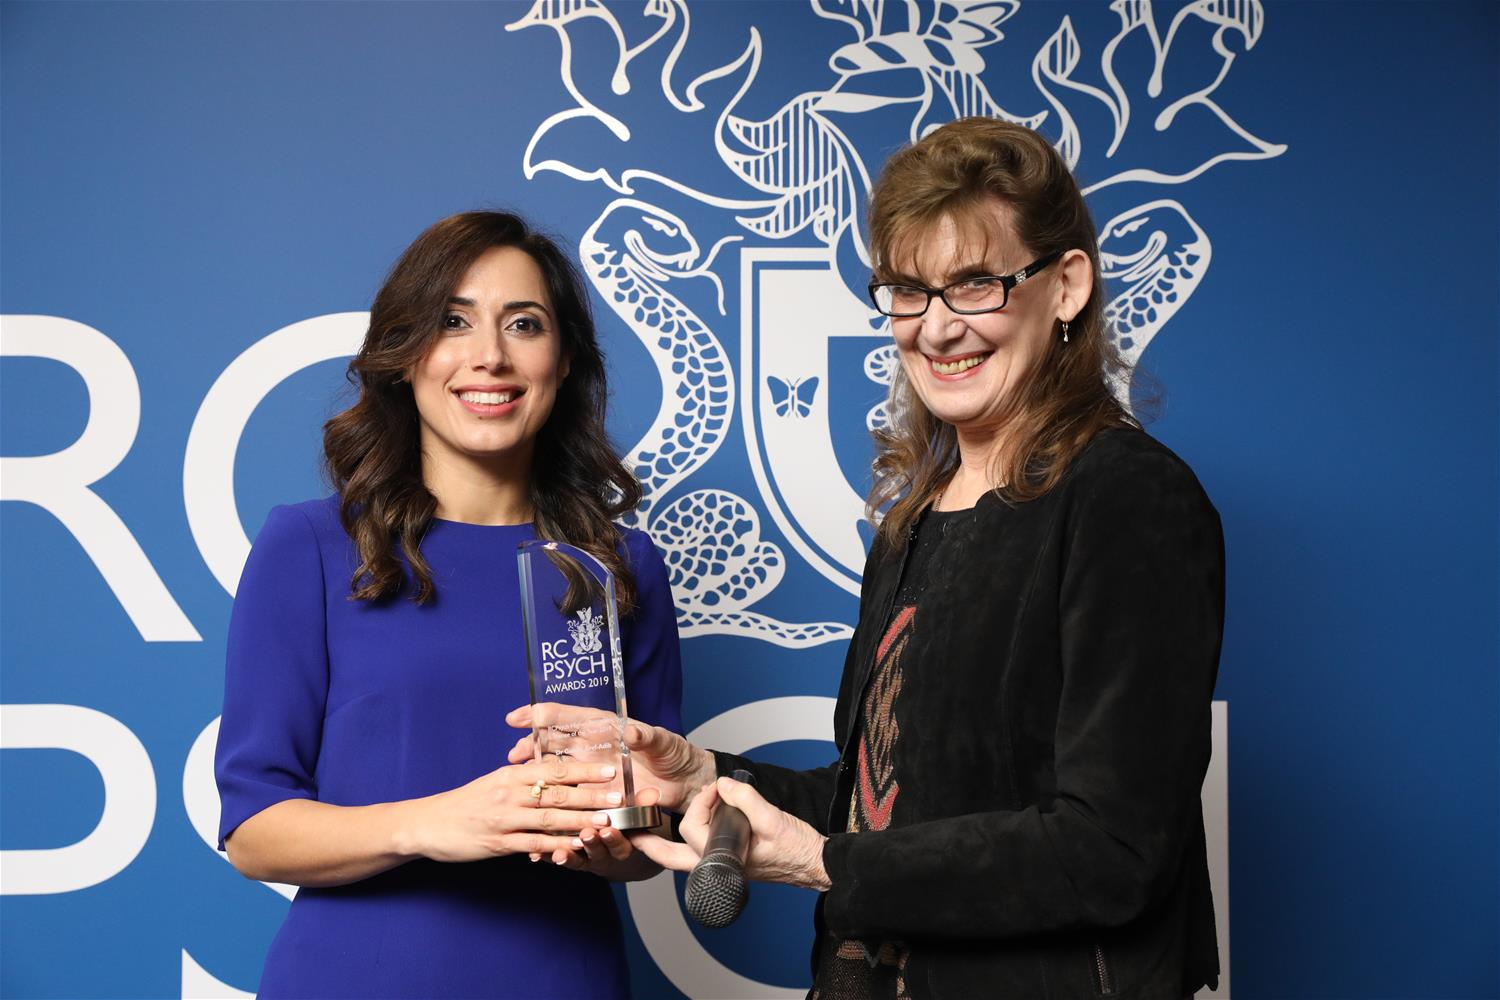 RCPsych Awards 2019 Golnar